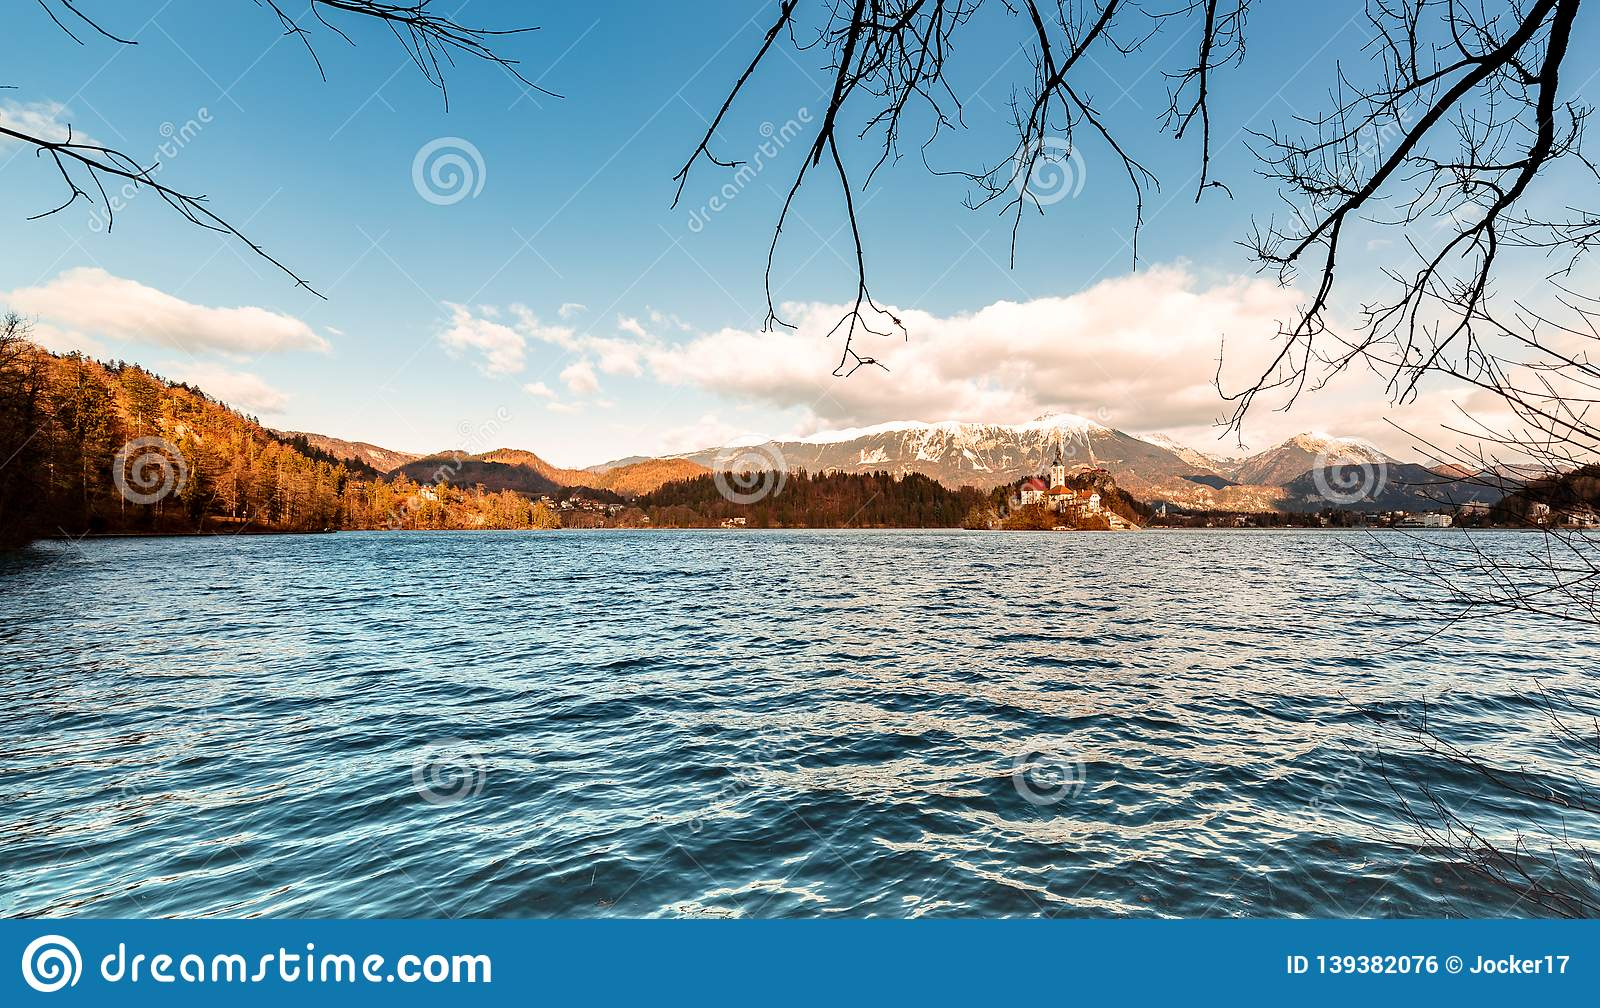 Romantic landscape at Lake Bled in Slovenia. Winter scenery sunny day, view of the church in the middle of the lake. Panorama